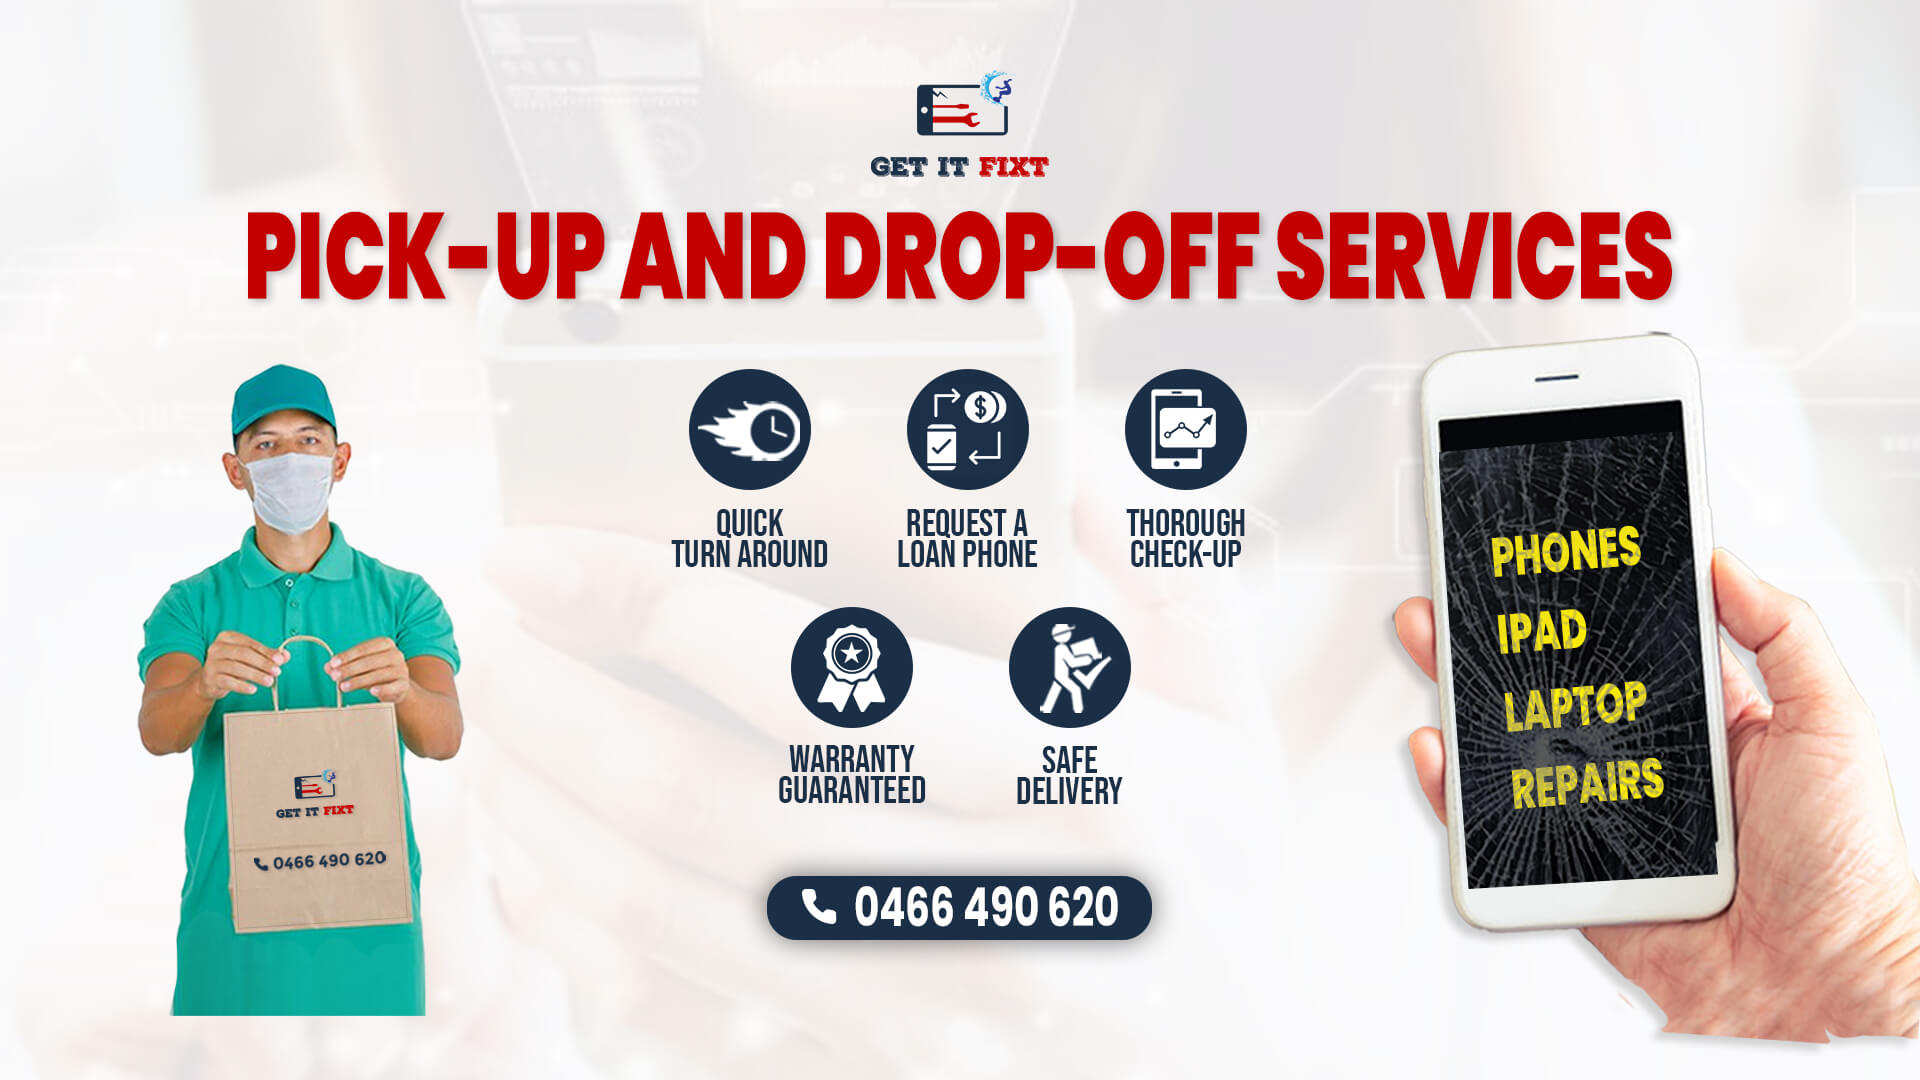 Pick-up- and Drop-off- Services   Mobile Phone Repairs Near Me